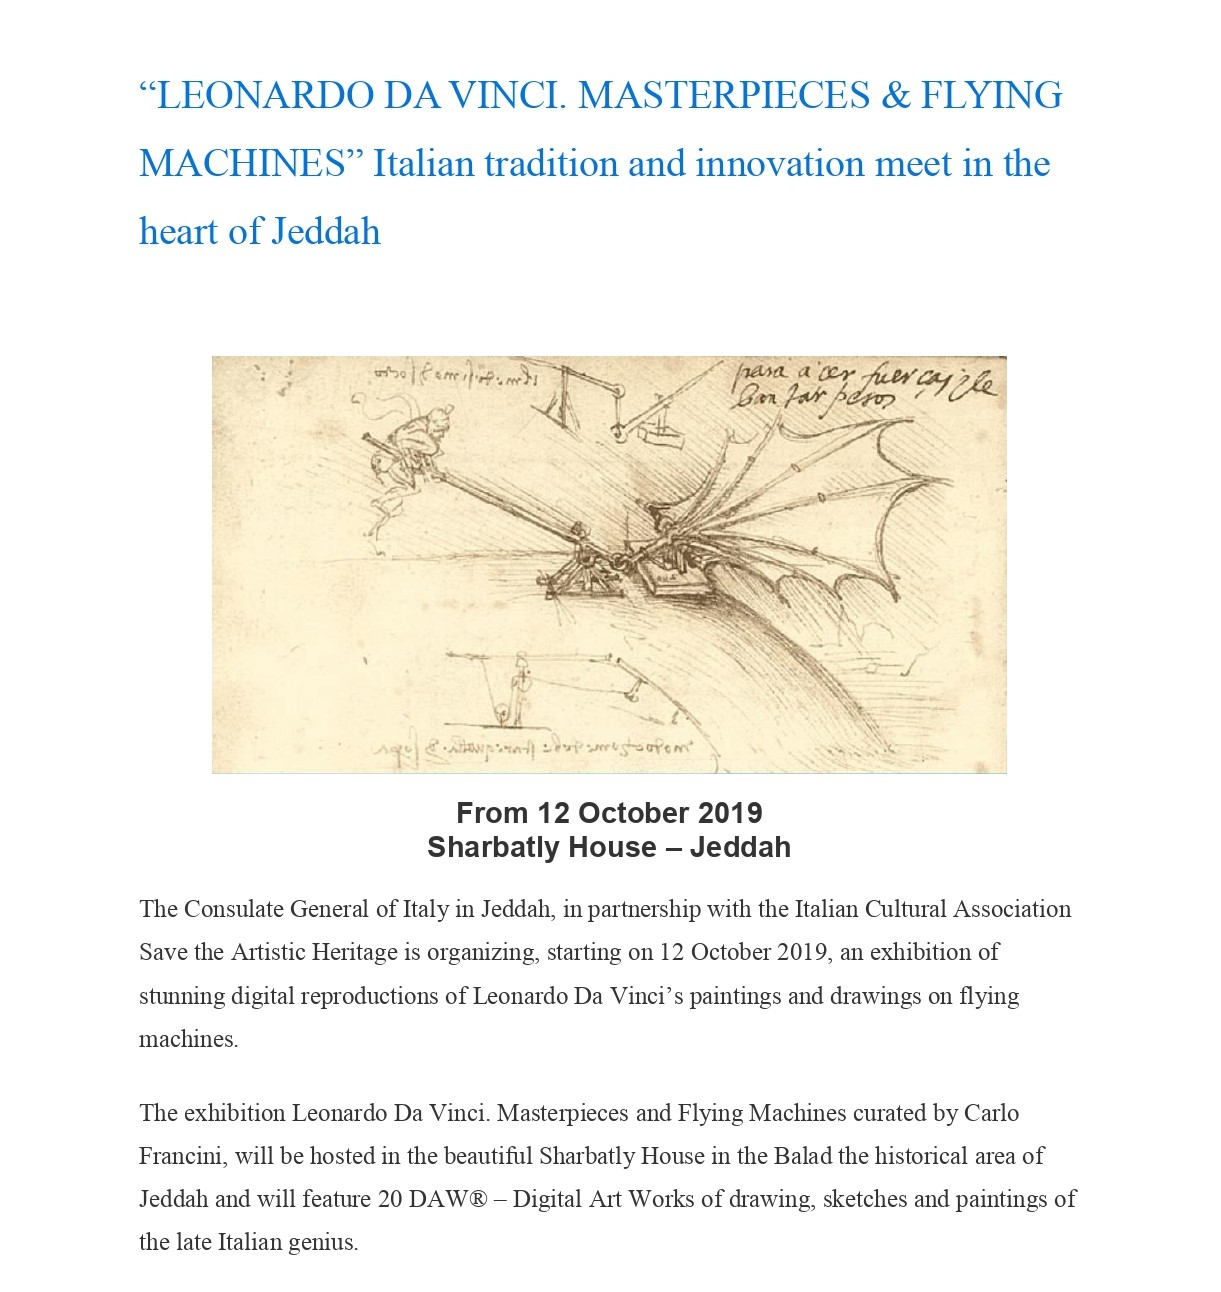 """LEONARDO DA VINCI. MASTERPIECES & FLYING MACHINES"" Italian tradition and innovation meet in the heart of Jeddah"